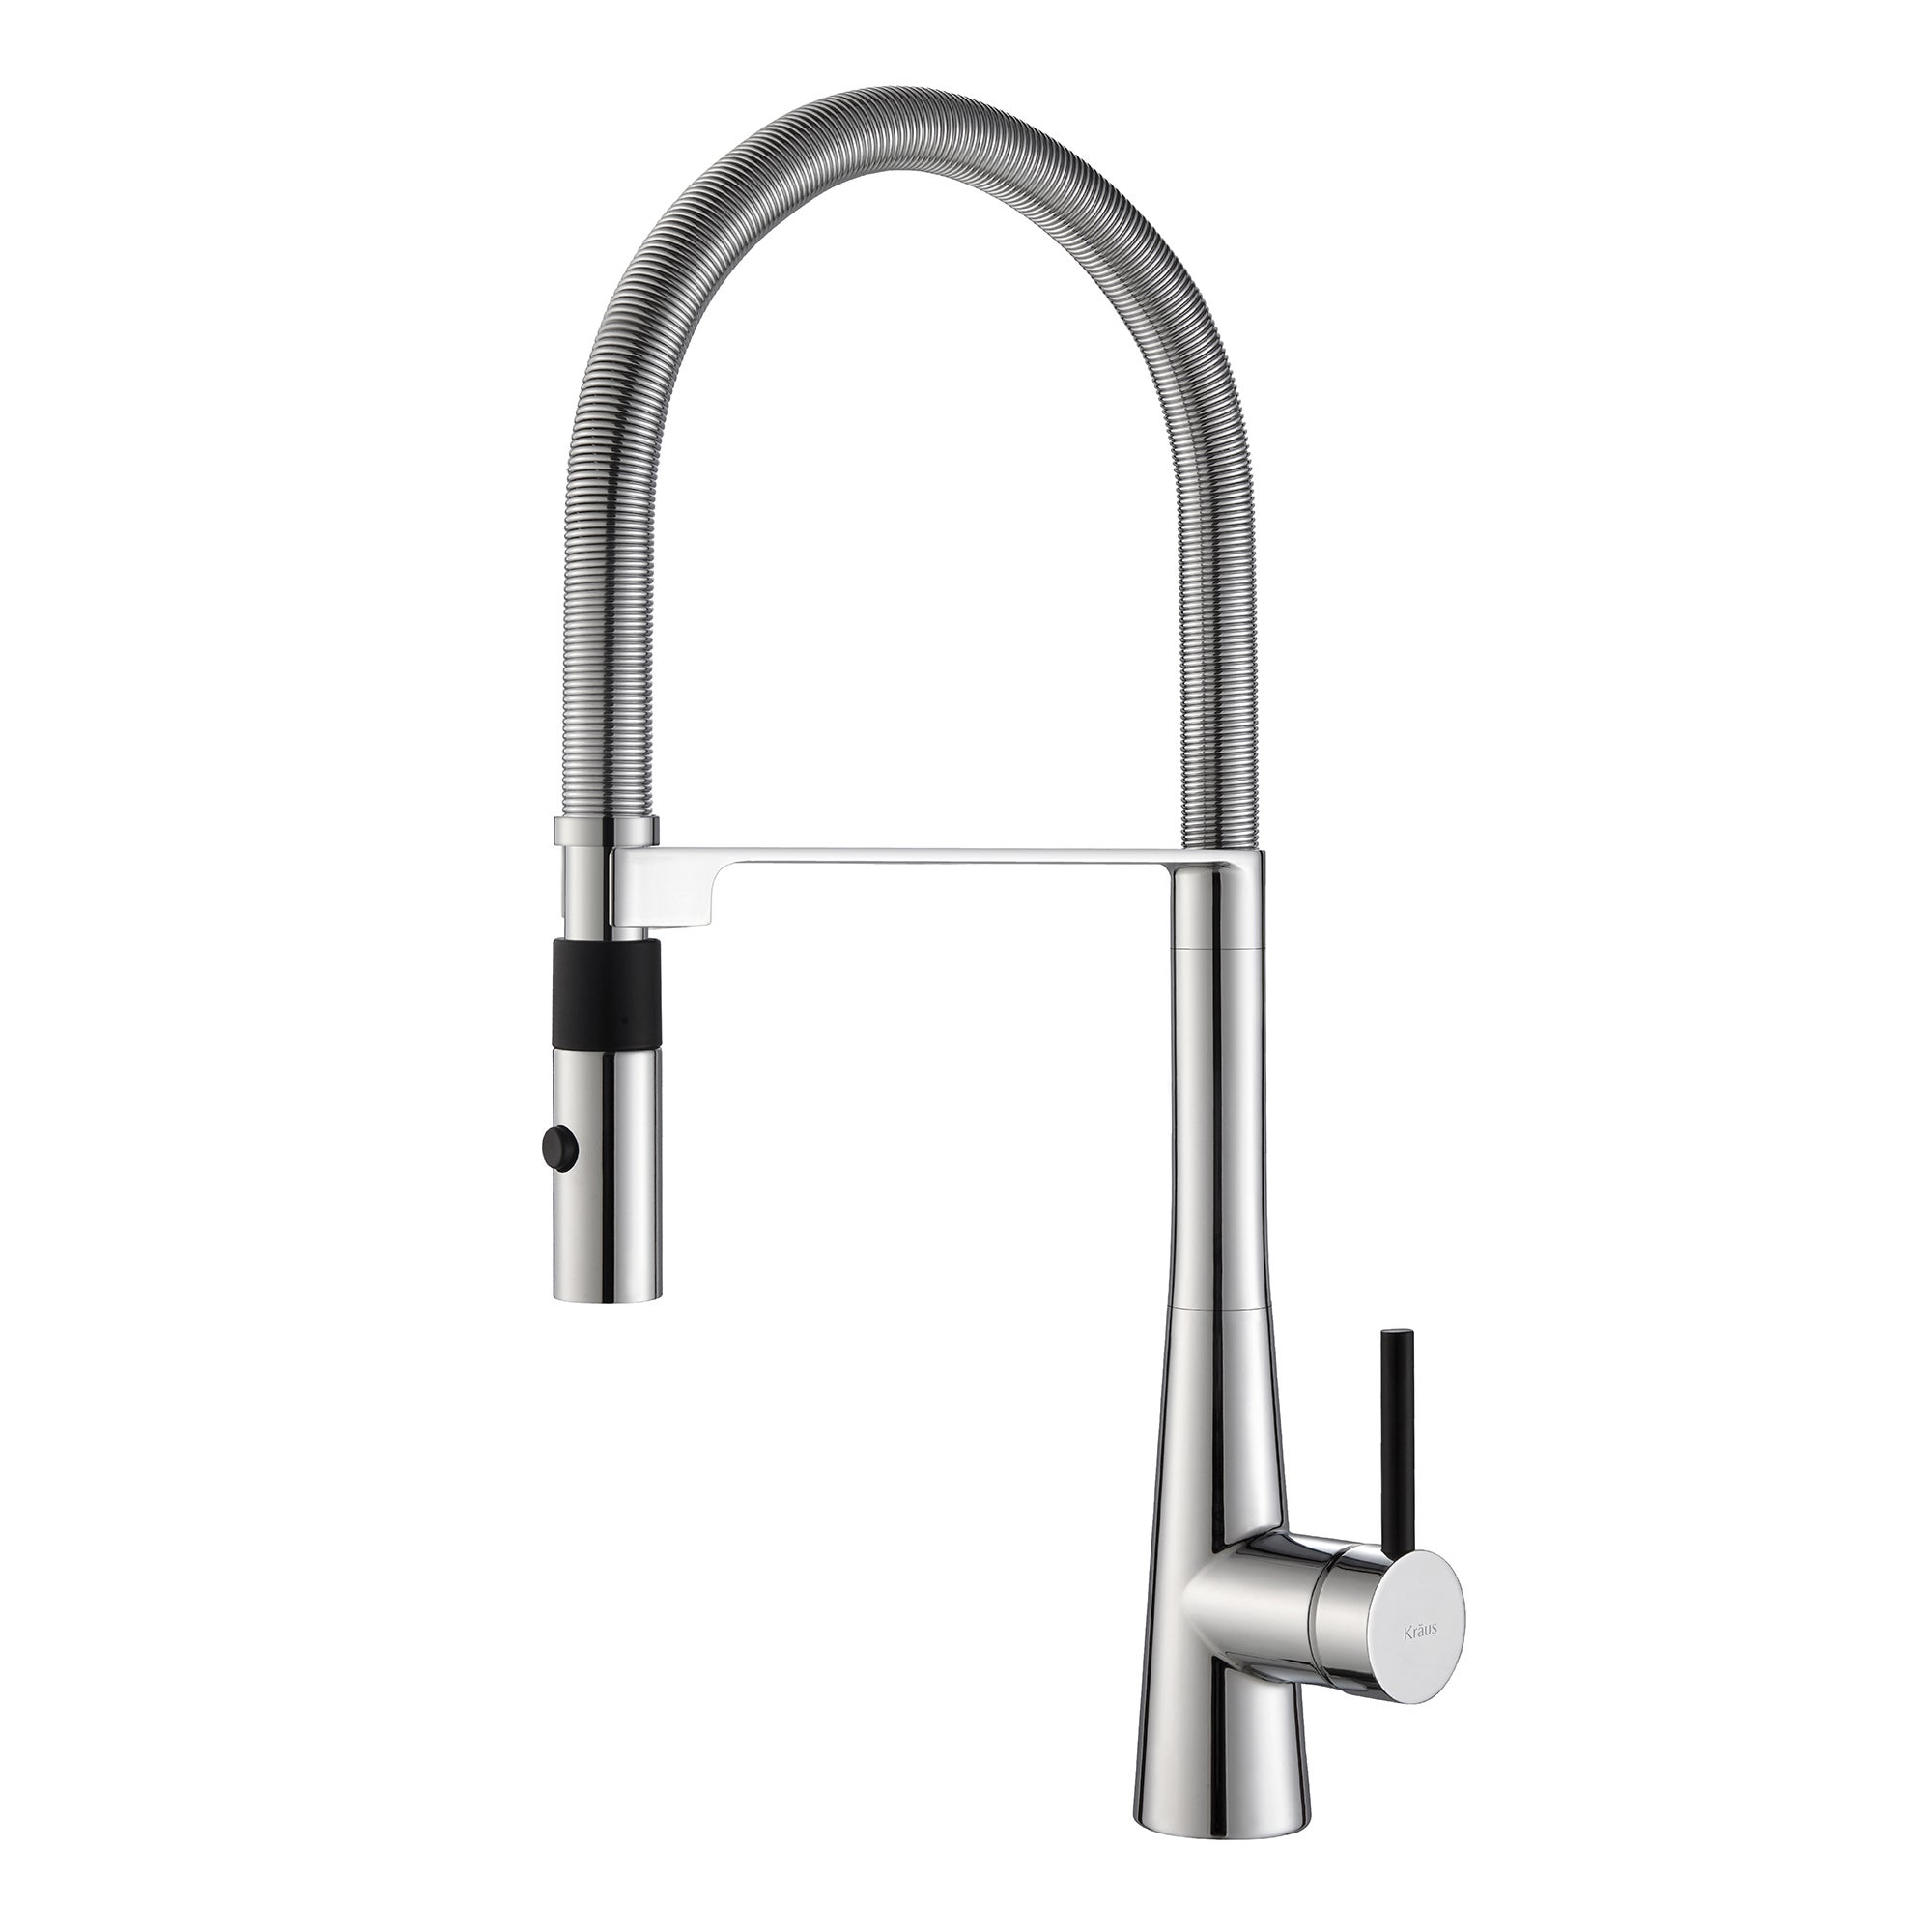 free dual products all sprayhead prev in brite sprayer with handle faucet steel stainless kitchen finish britt kraus commercial function single spot